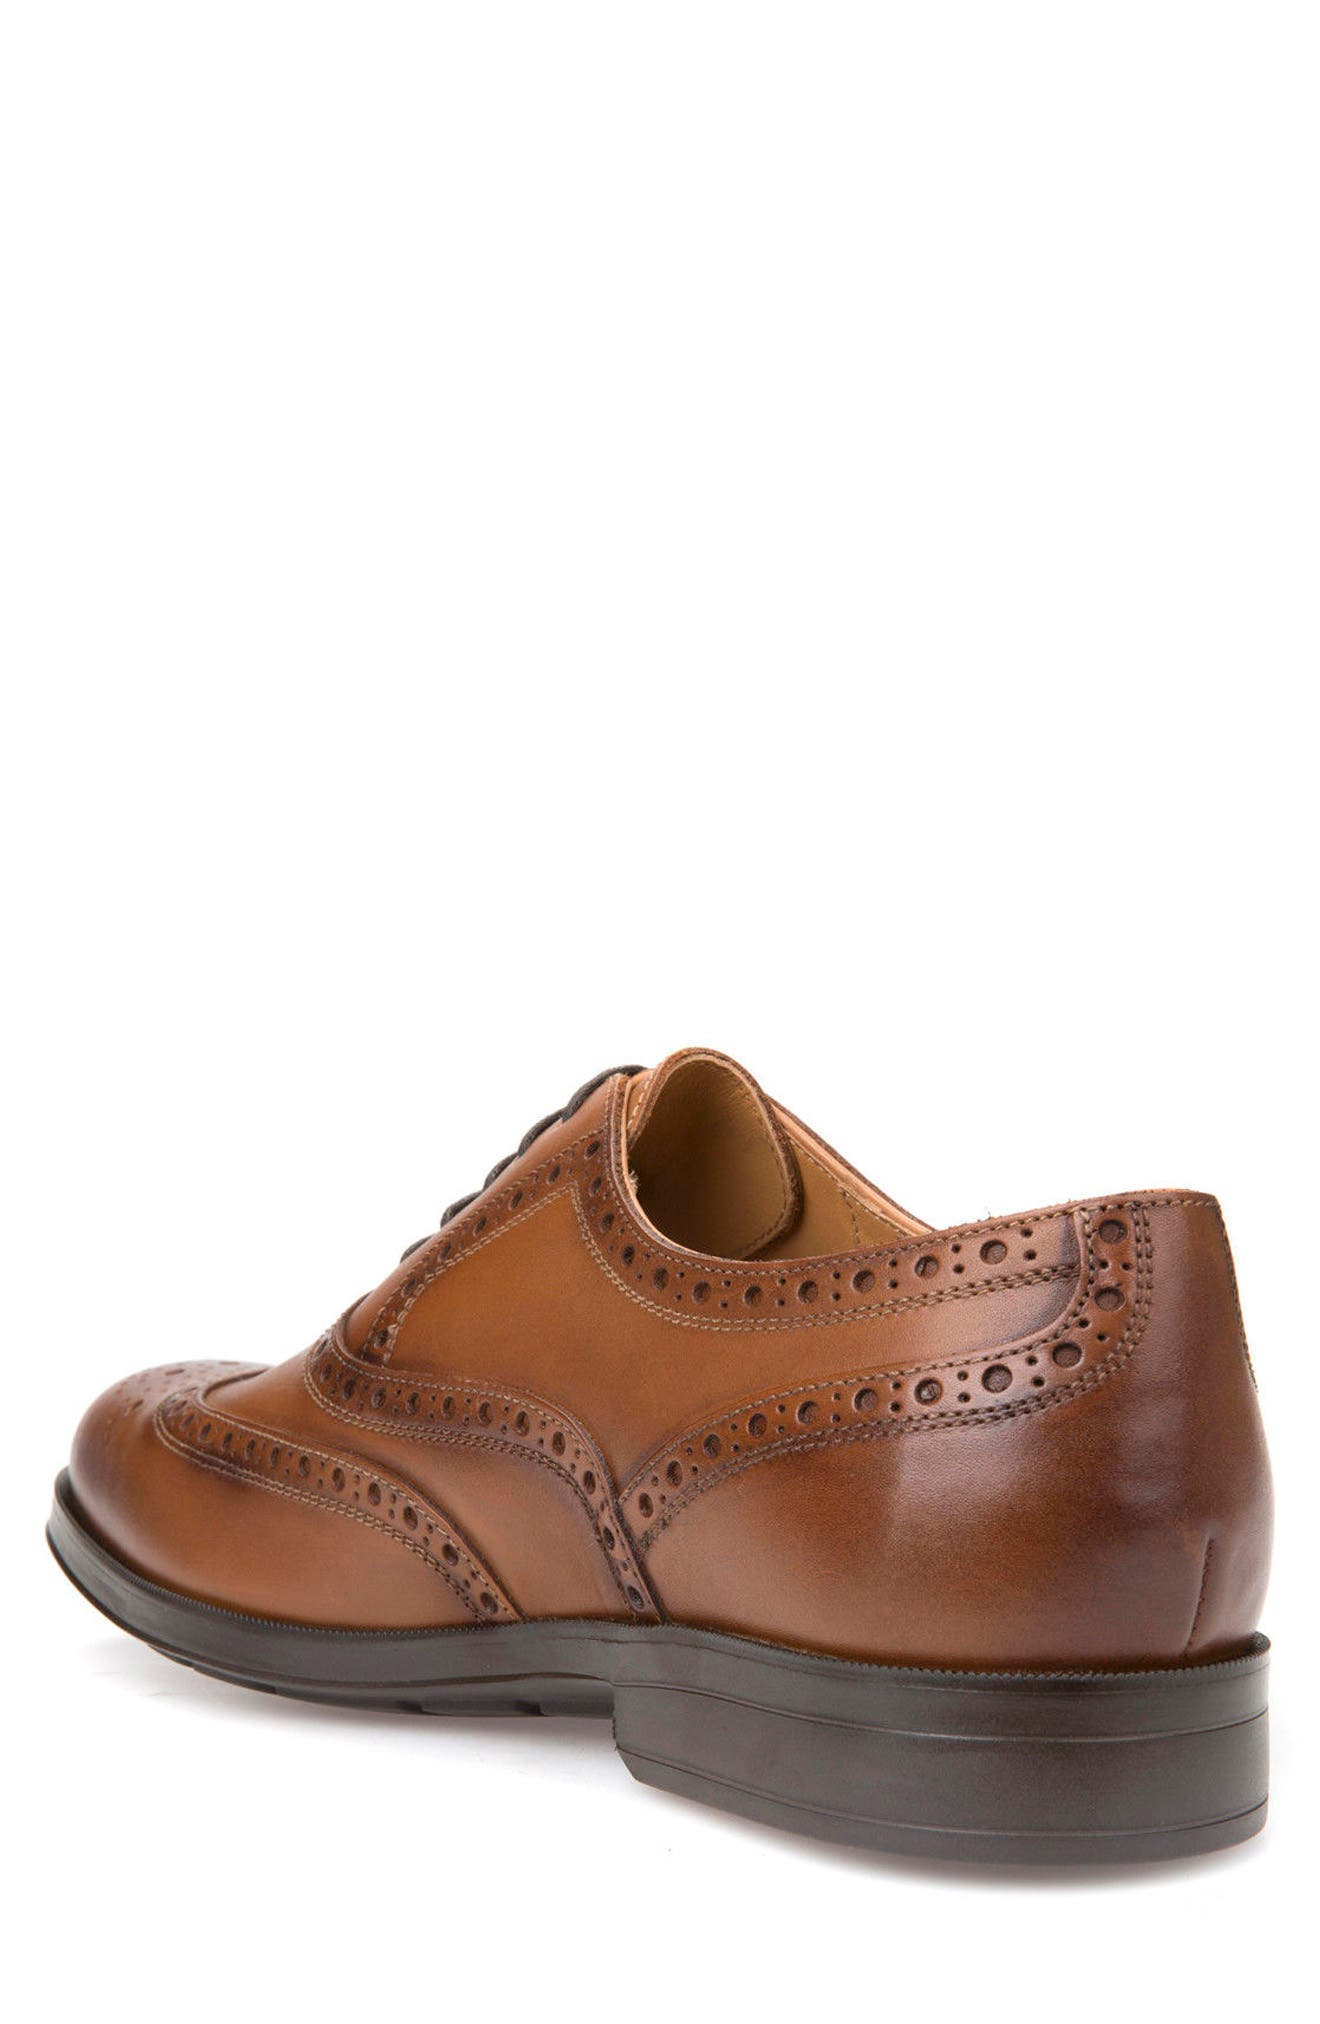 Hilstone 2Fit 2 Wingtip Oxford,                             Alternate thumbnail 2, color,                             Cognac Leather